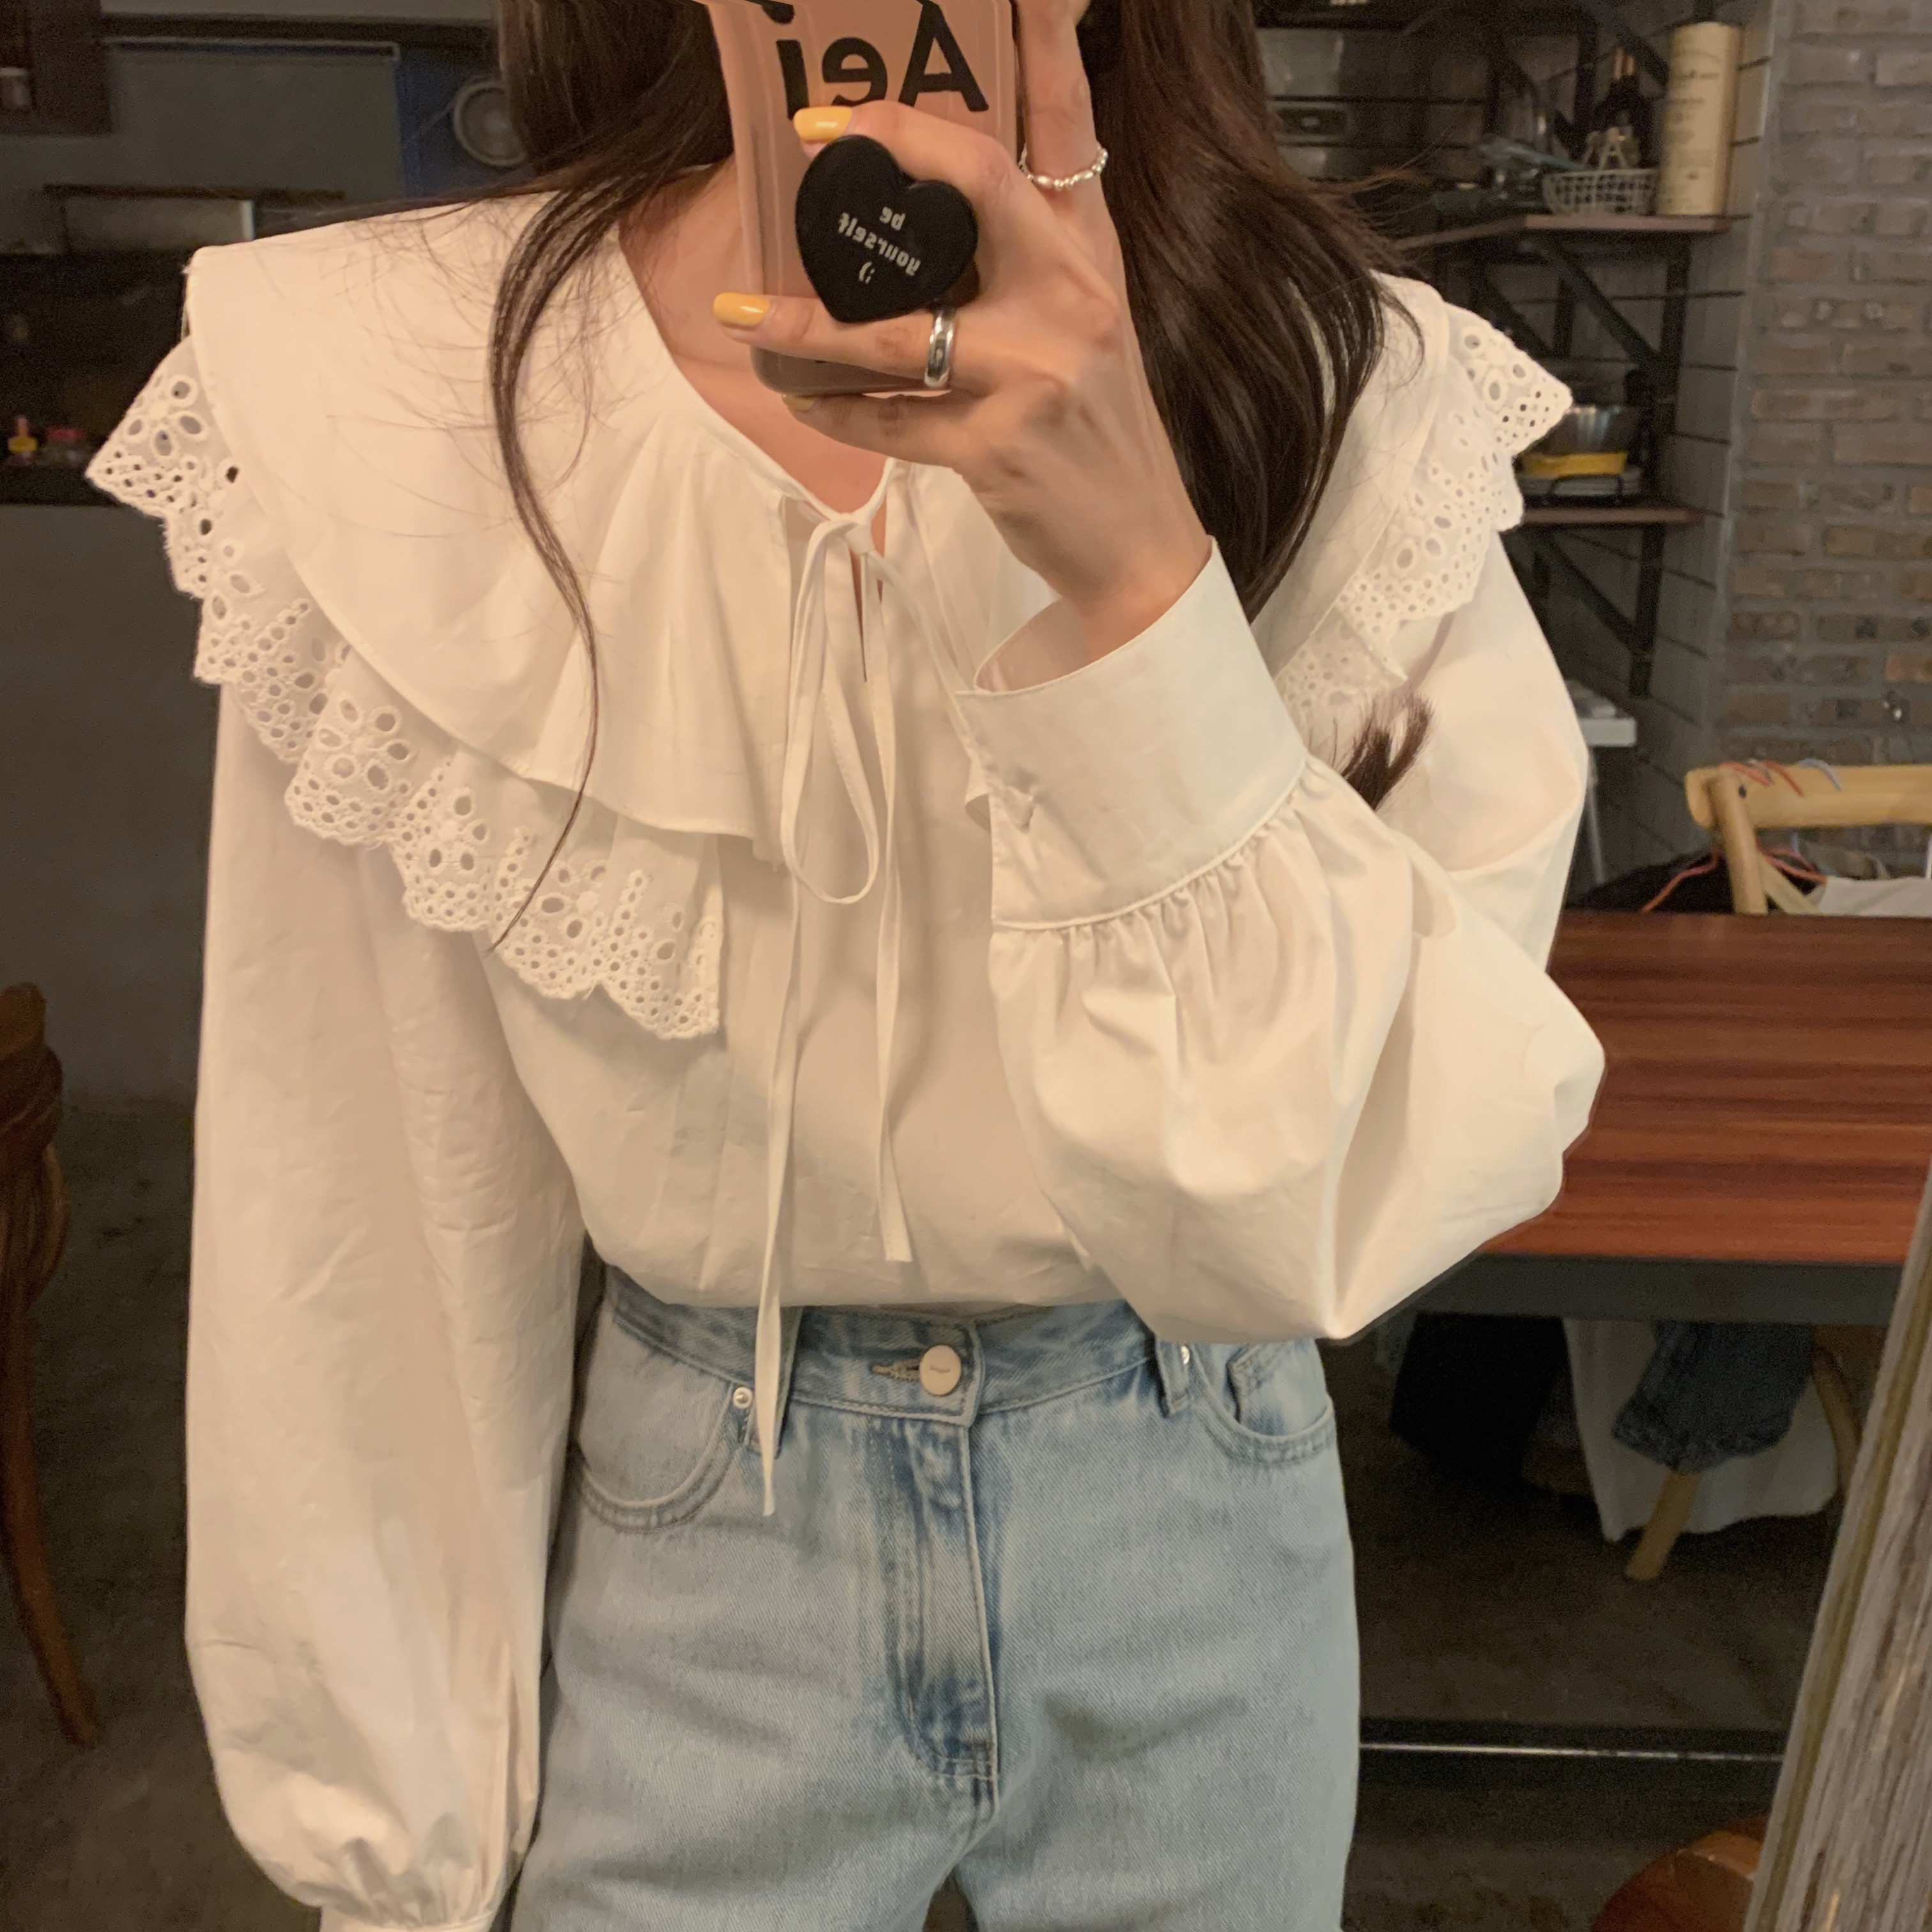 H84cc9b51435845108eb5f99622ffc73b2 - Spring / Autumn Korean Lace-Up Hollow Out Collar Long Sleeves Loose Solid Blouse